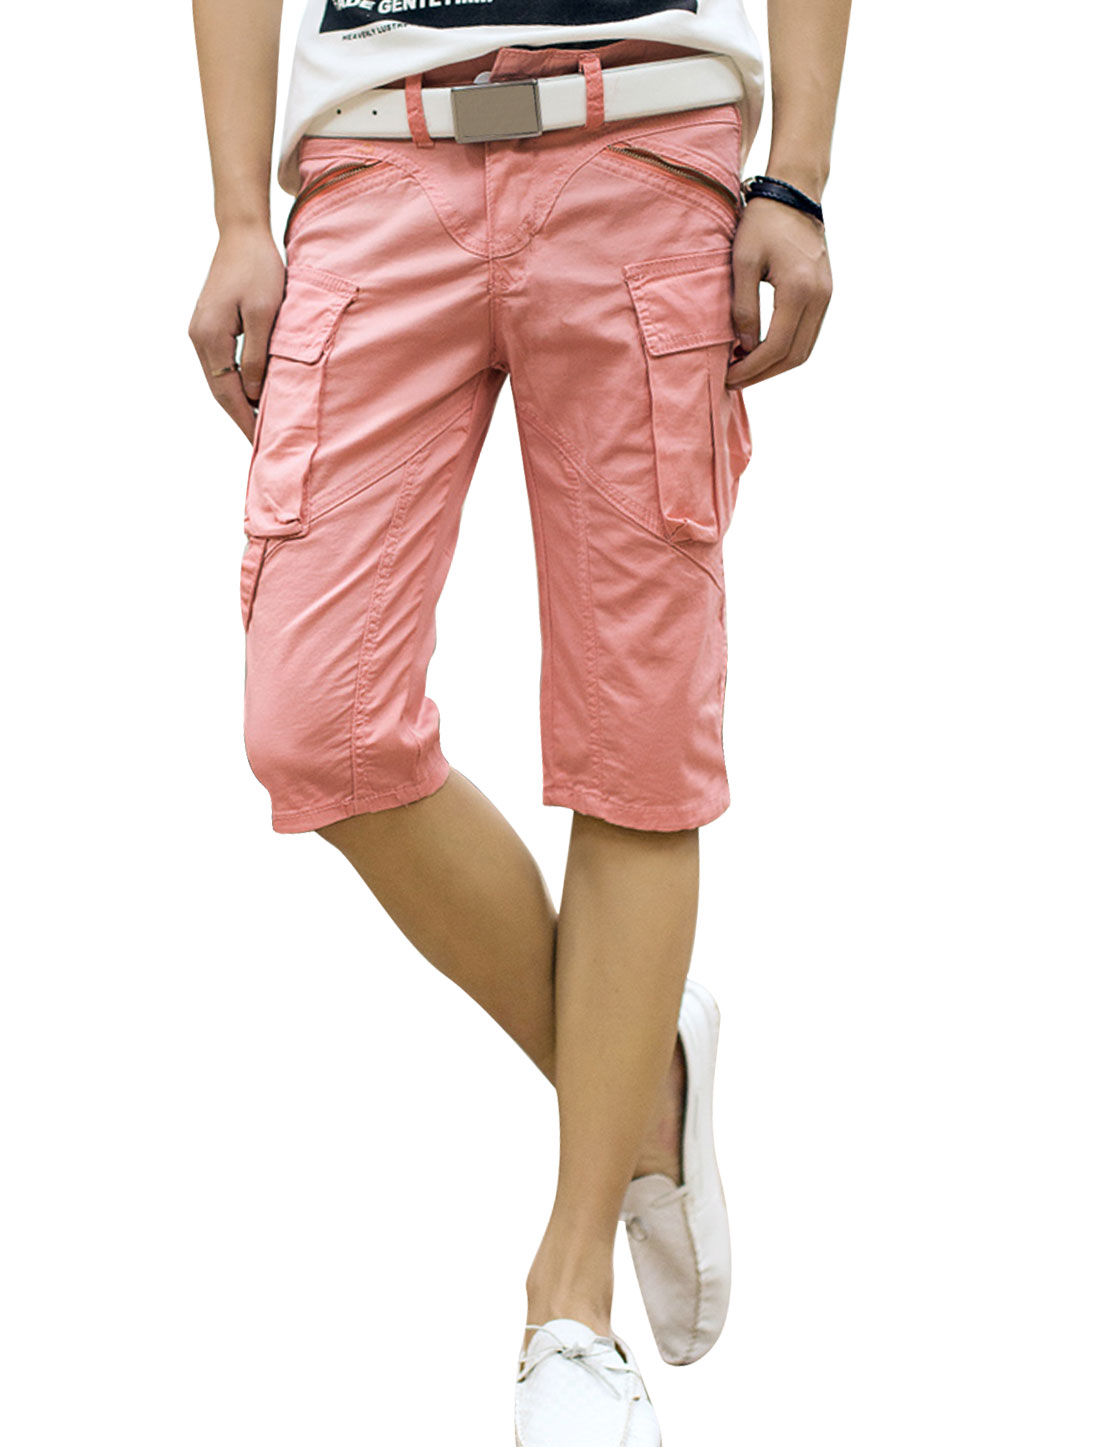 Men Casual Zip Fly Zipper Decor Cargo Shorts Light Salmon W30